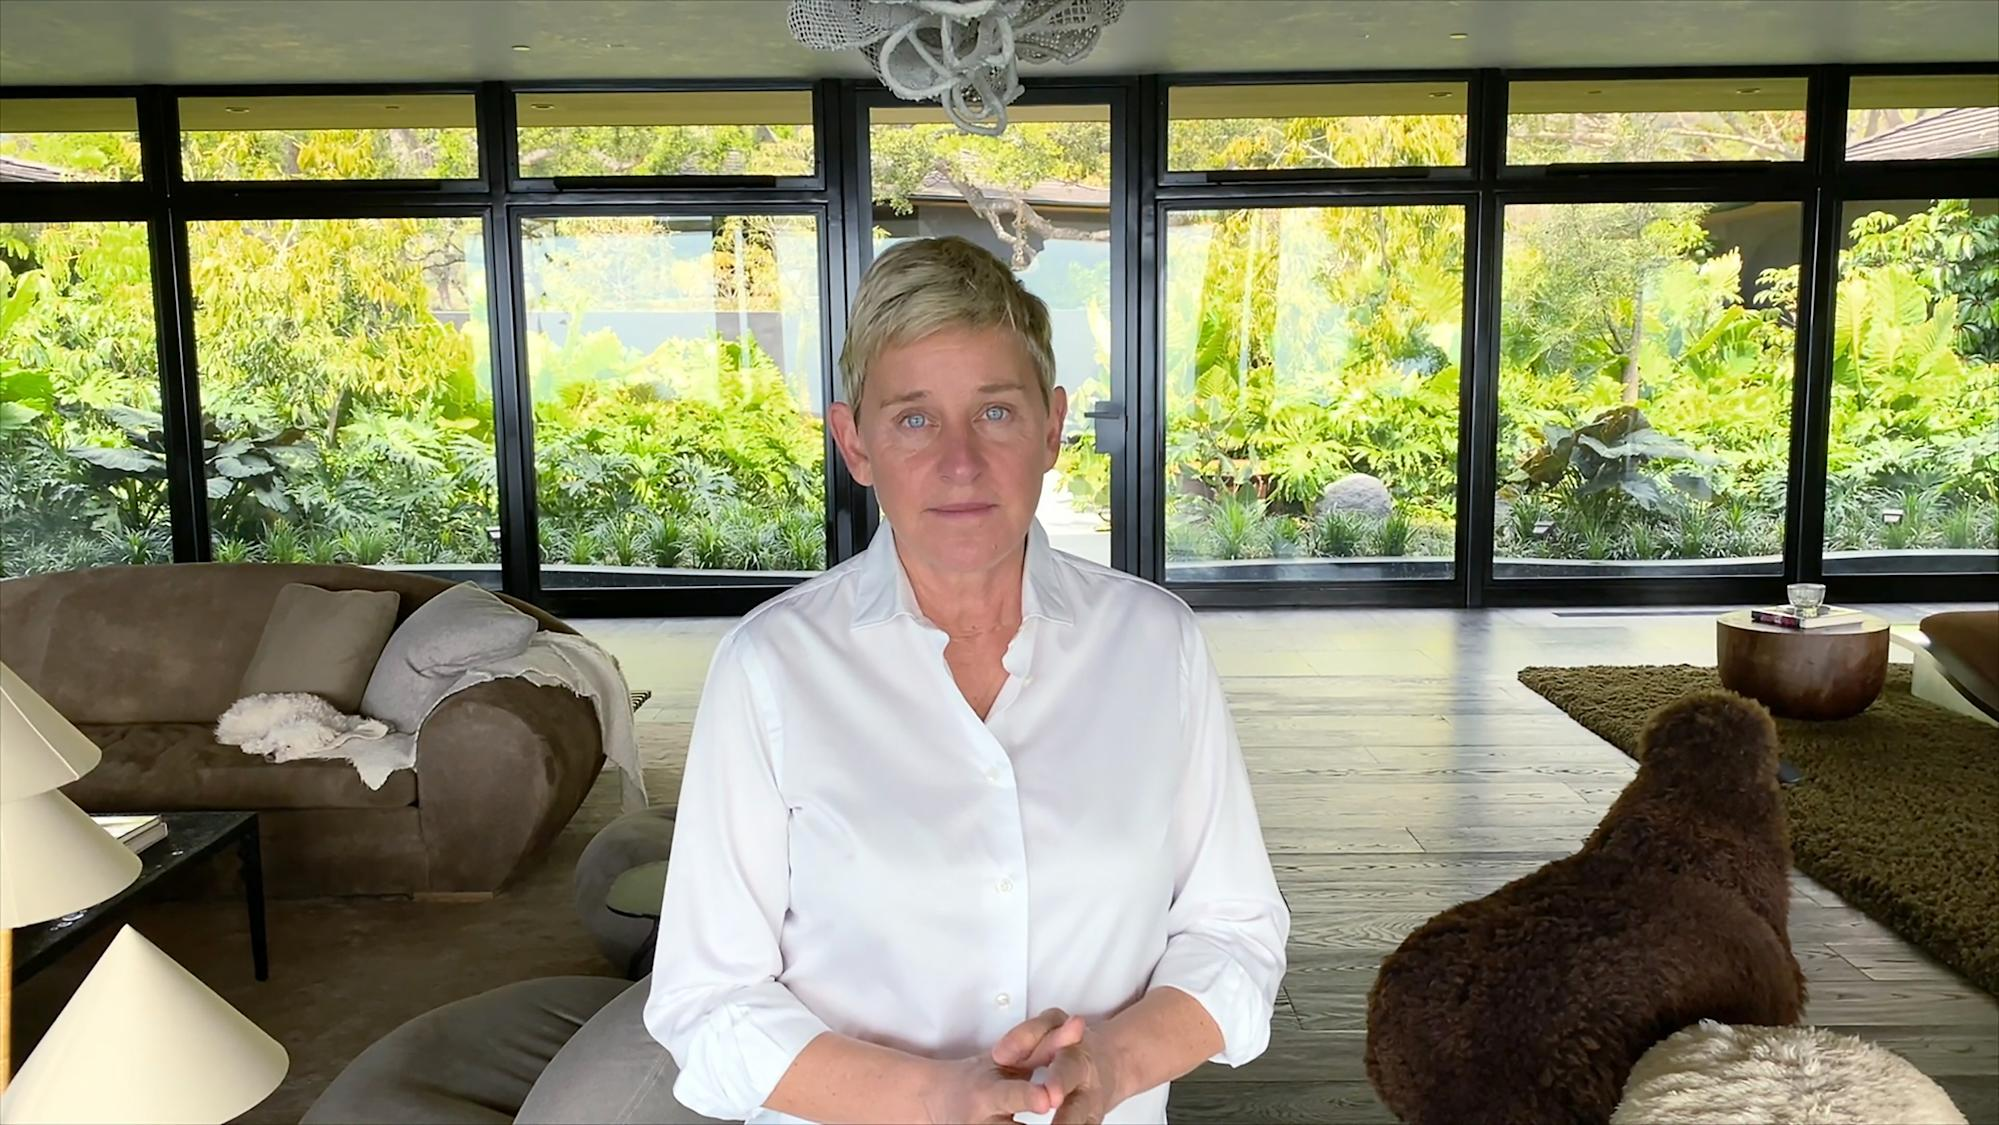 Ellen DeGeneres Show hit with sexual misconduct allegations